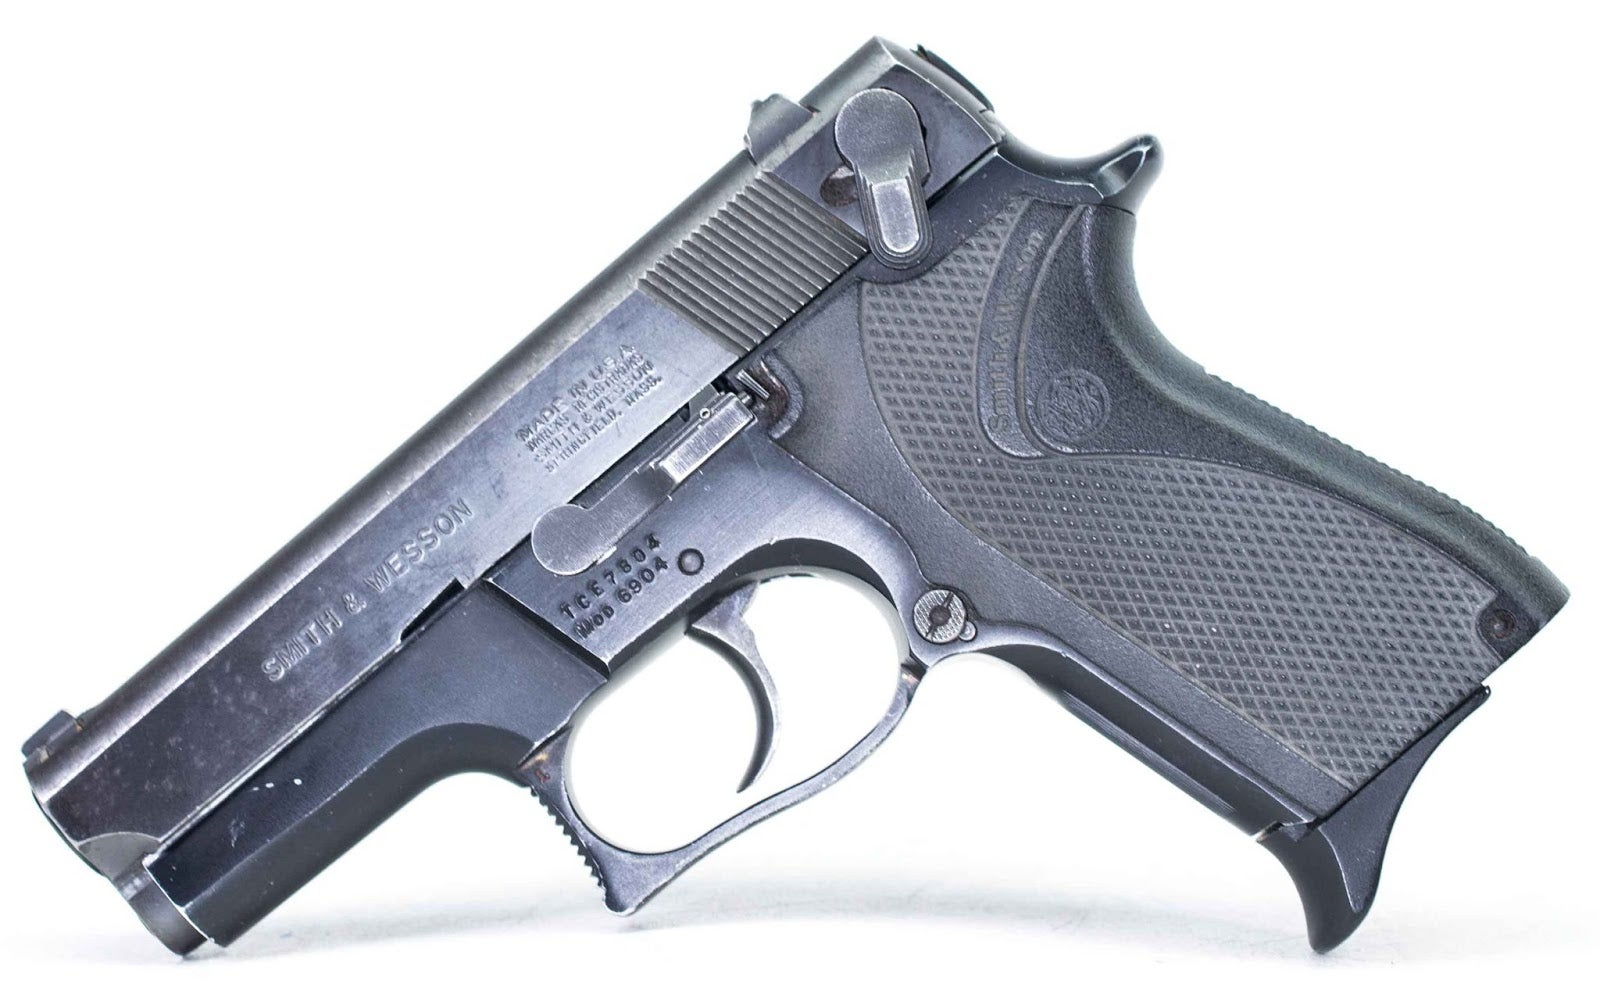 Smith & Wesson 6904 9mm